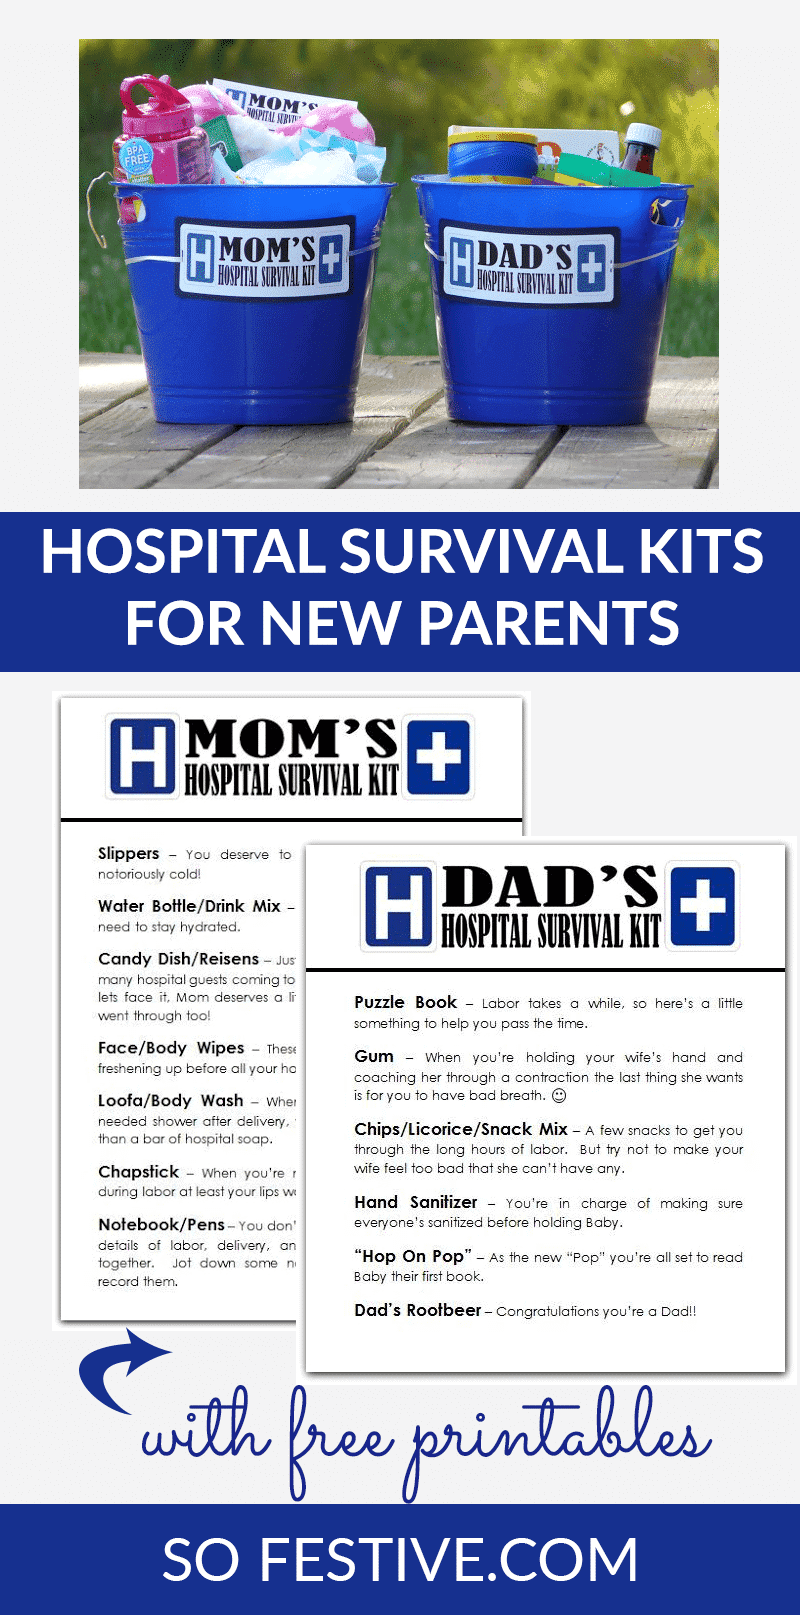 Hospital Survival Kits Gifts For New Moms And Dads So